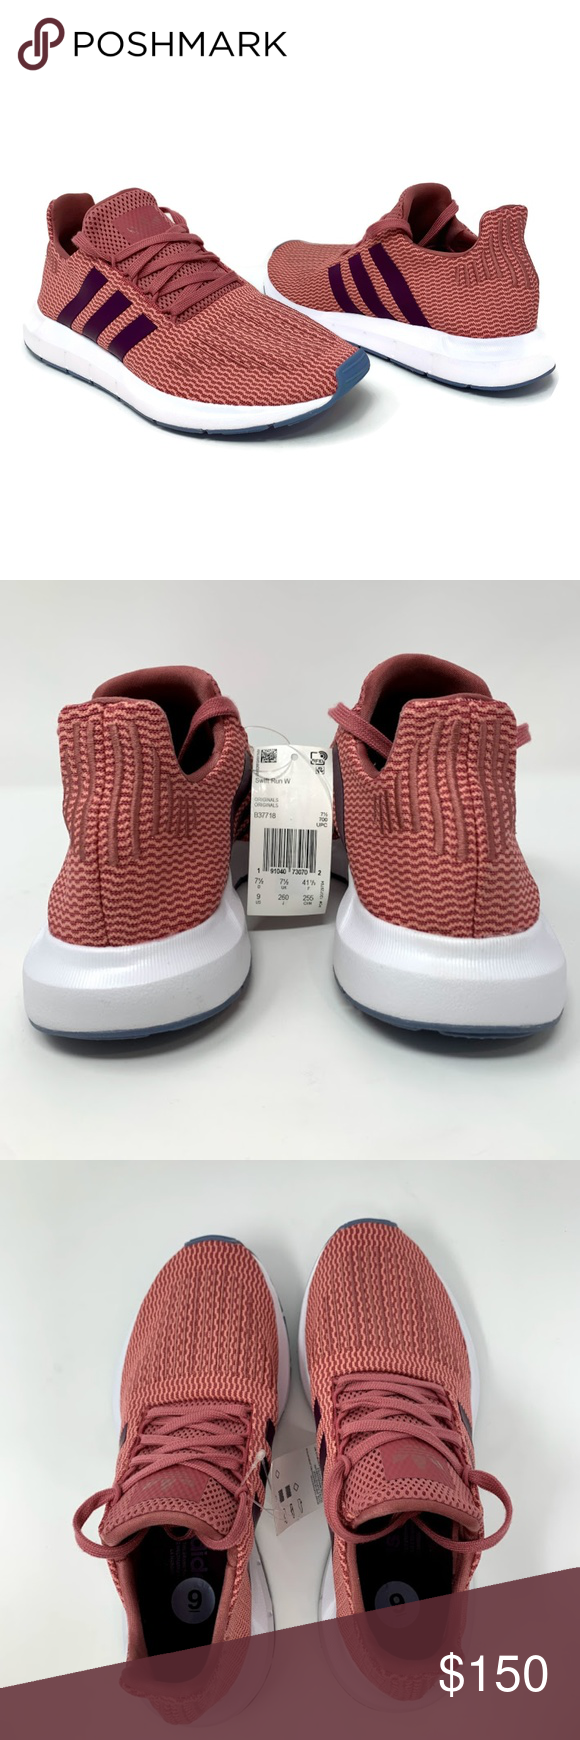 9269fb7fb23f7 Adidas Swift Run Women s Training Running Shoes ADIDAS Adidas Swift Run  B37718 Women s Running Shoes Size 9 Trace Maroon   Red Night   White Lace  up Low top ...